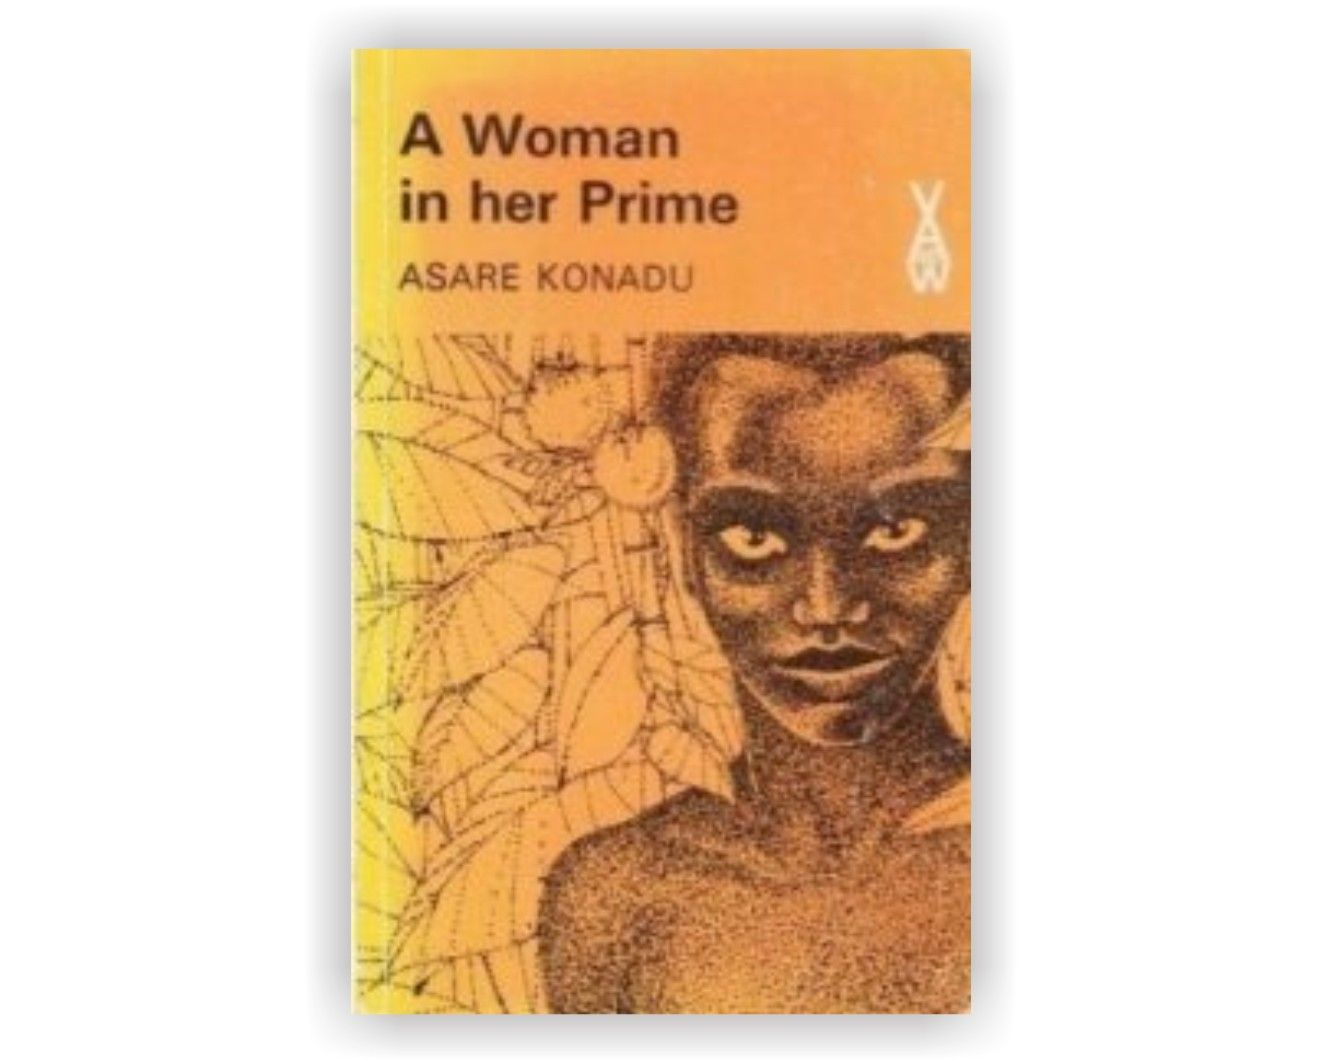 SUMMARY: A woman in her prime by Asare Konadu